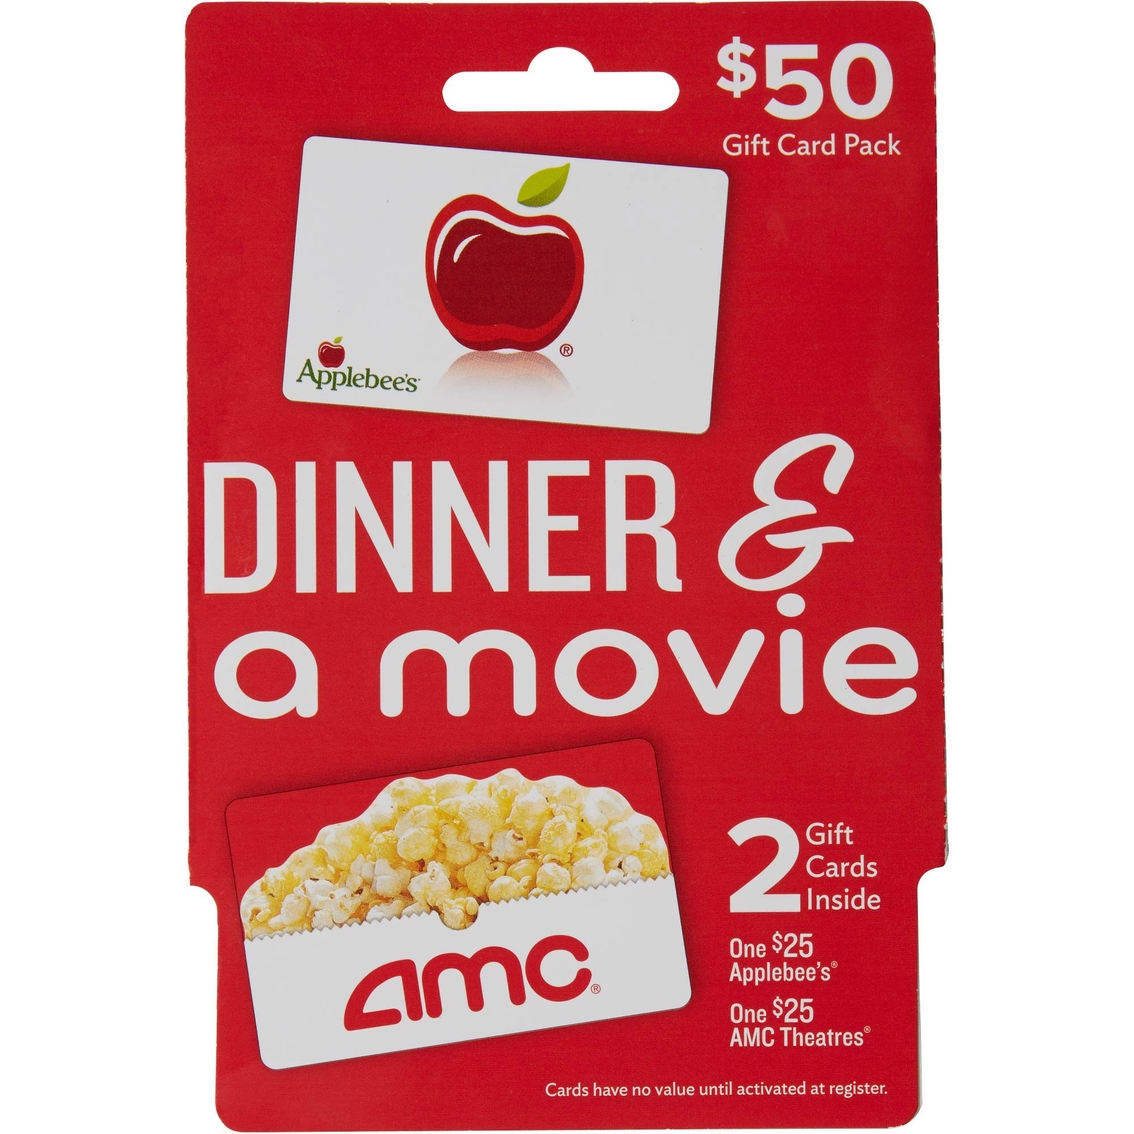 applebees amc theaters dinner a movie gift card pack